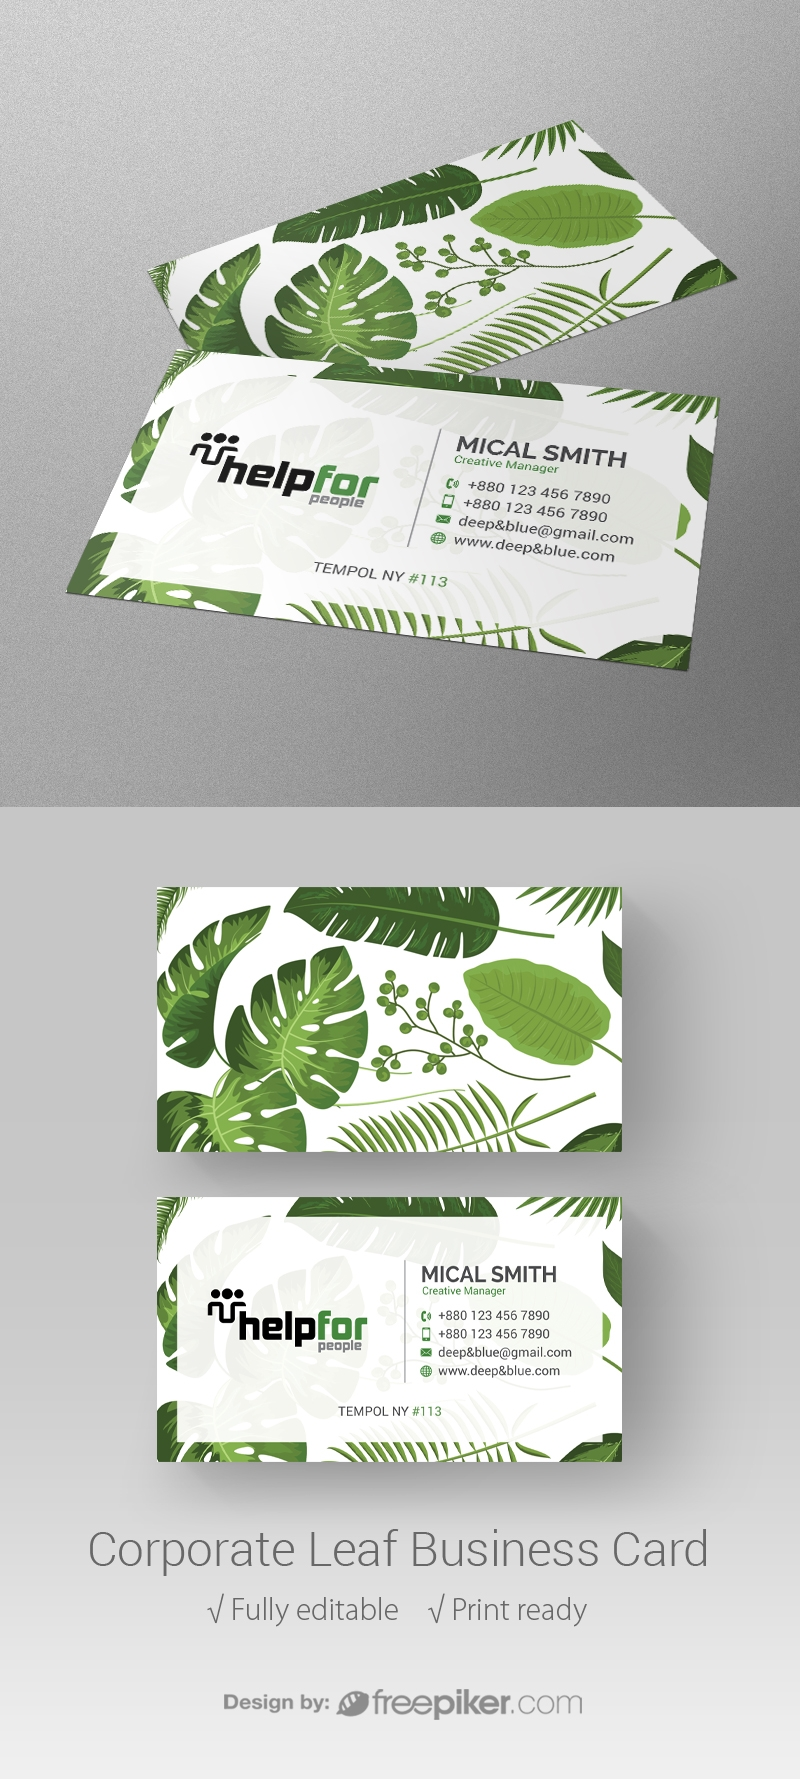 Freepiker | corporate leaf business card